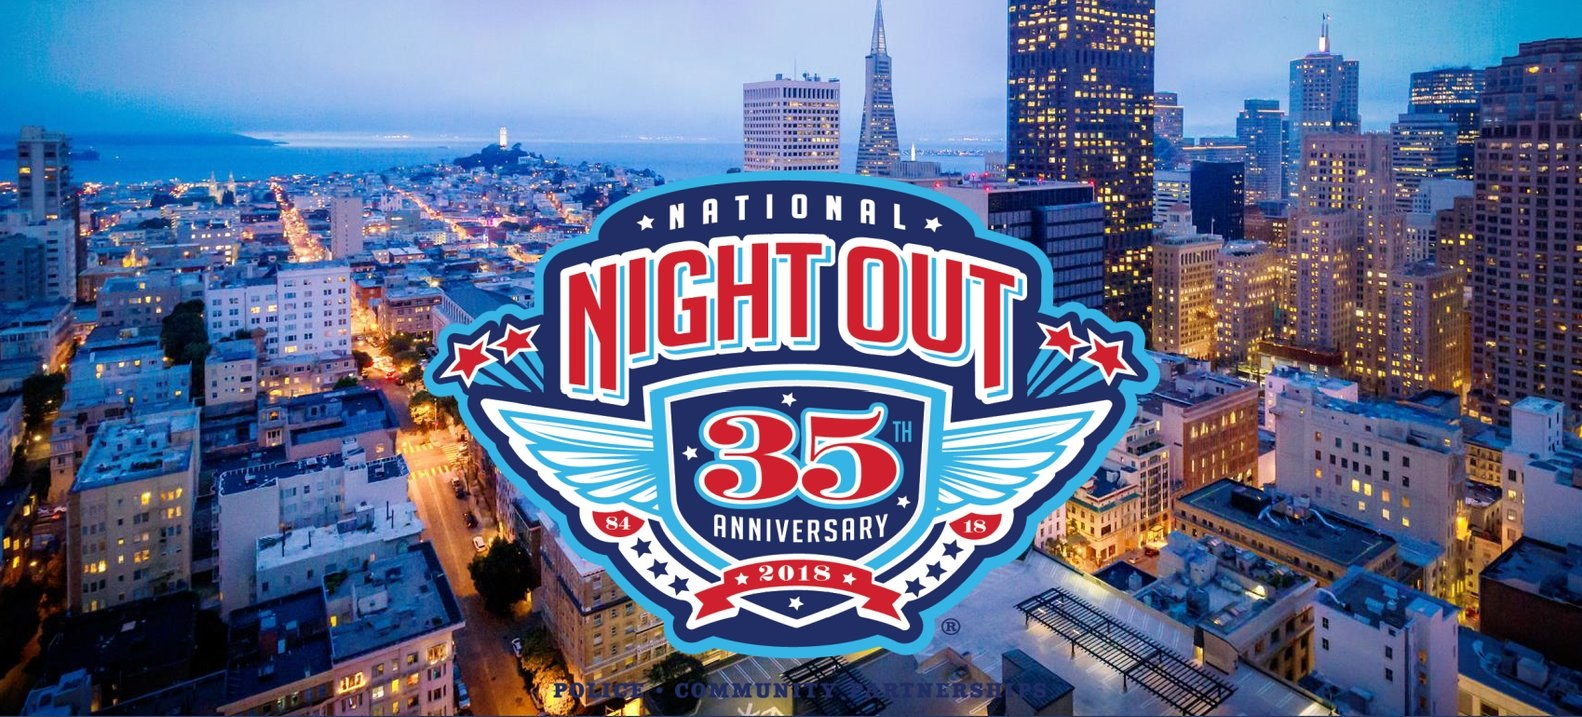 National Night Out Banner 35th